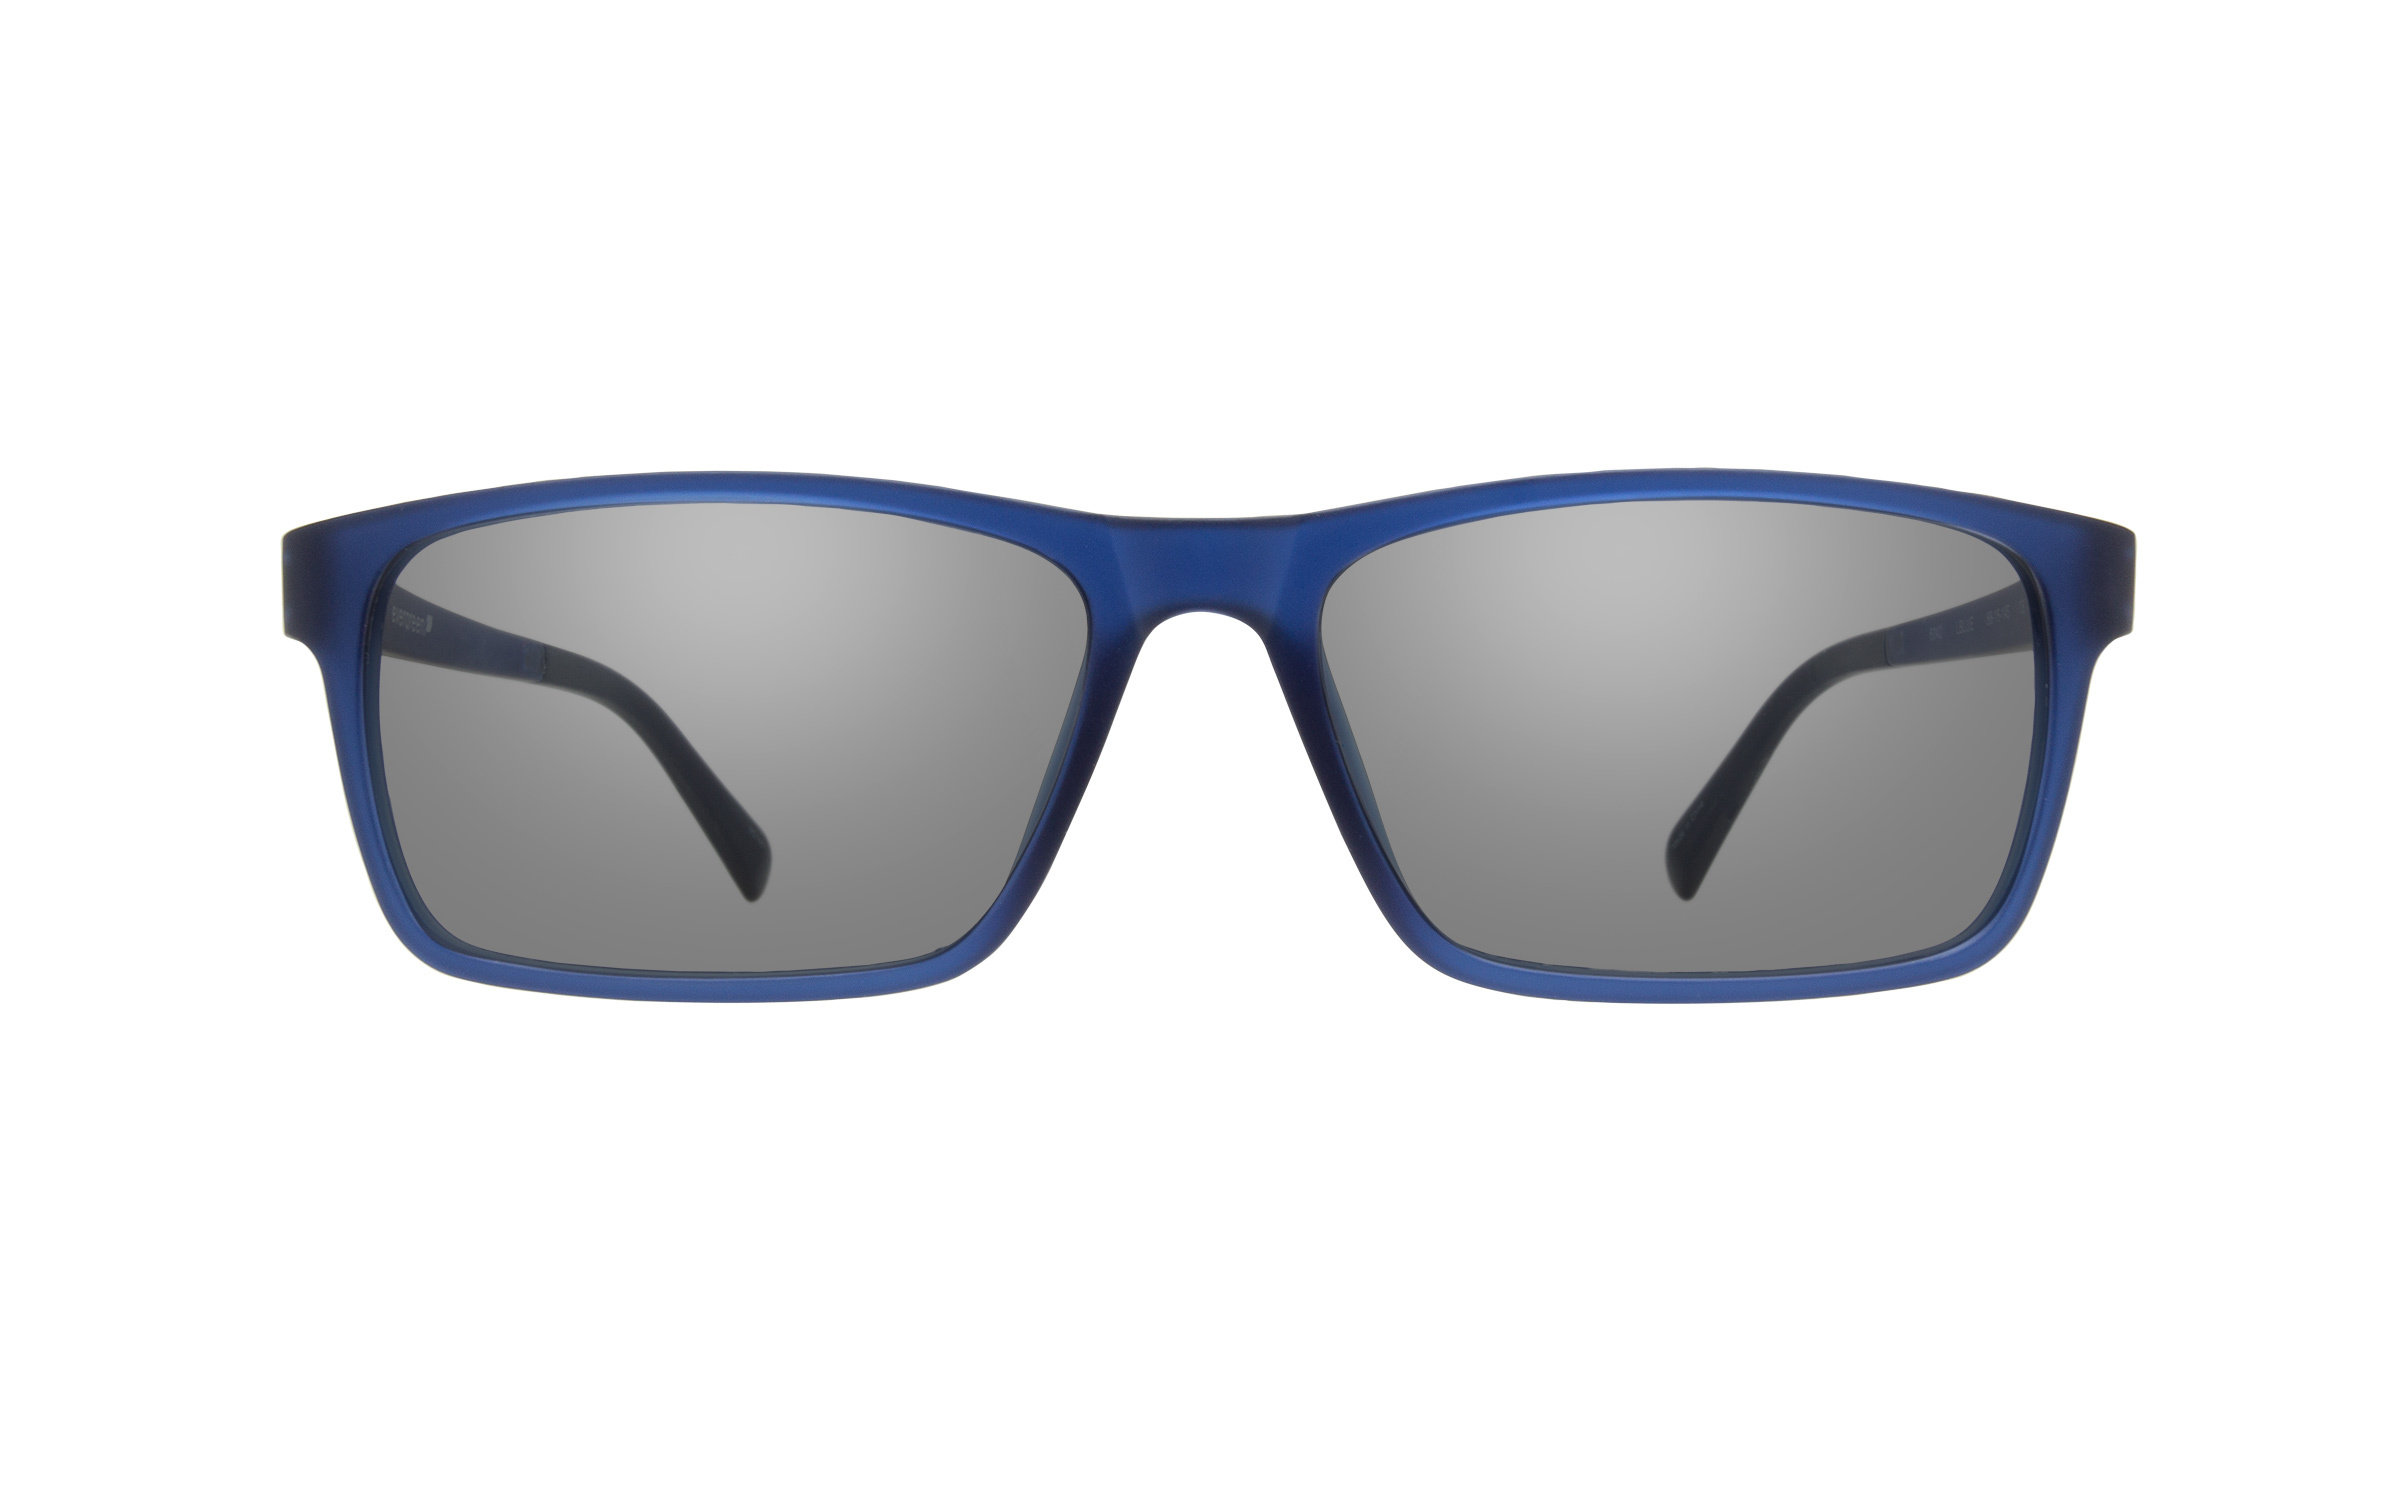 shop confidently for evergreen 6042 56 glasses with